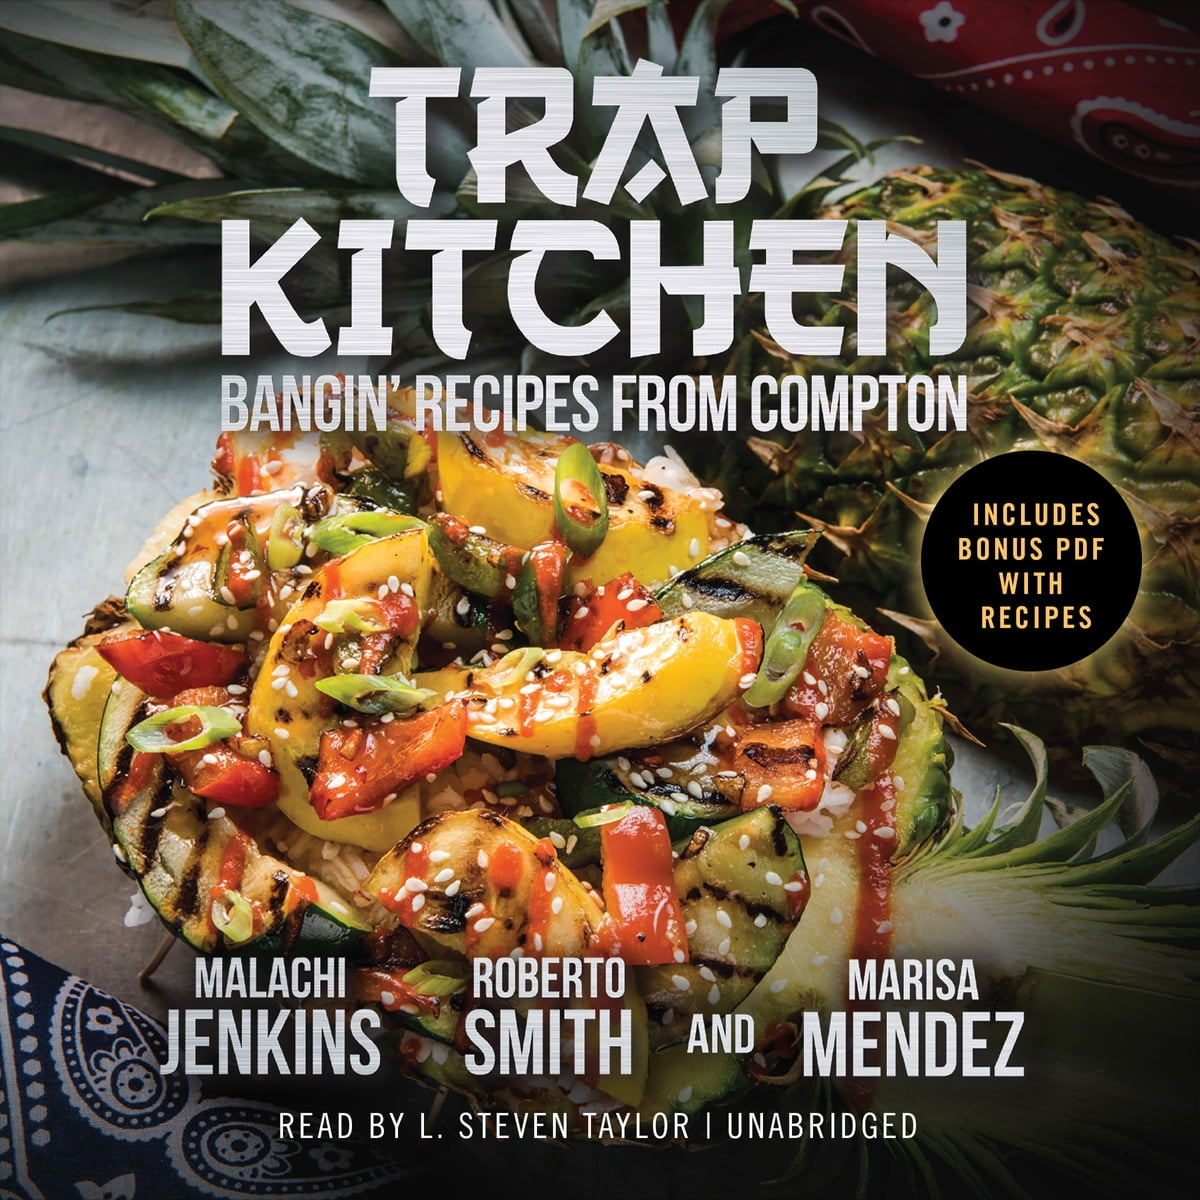 trap kitchen audiobook by roberto smith 9781538427354 rakuten kobo - Trap Kitchen